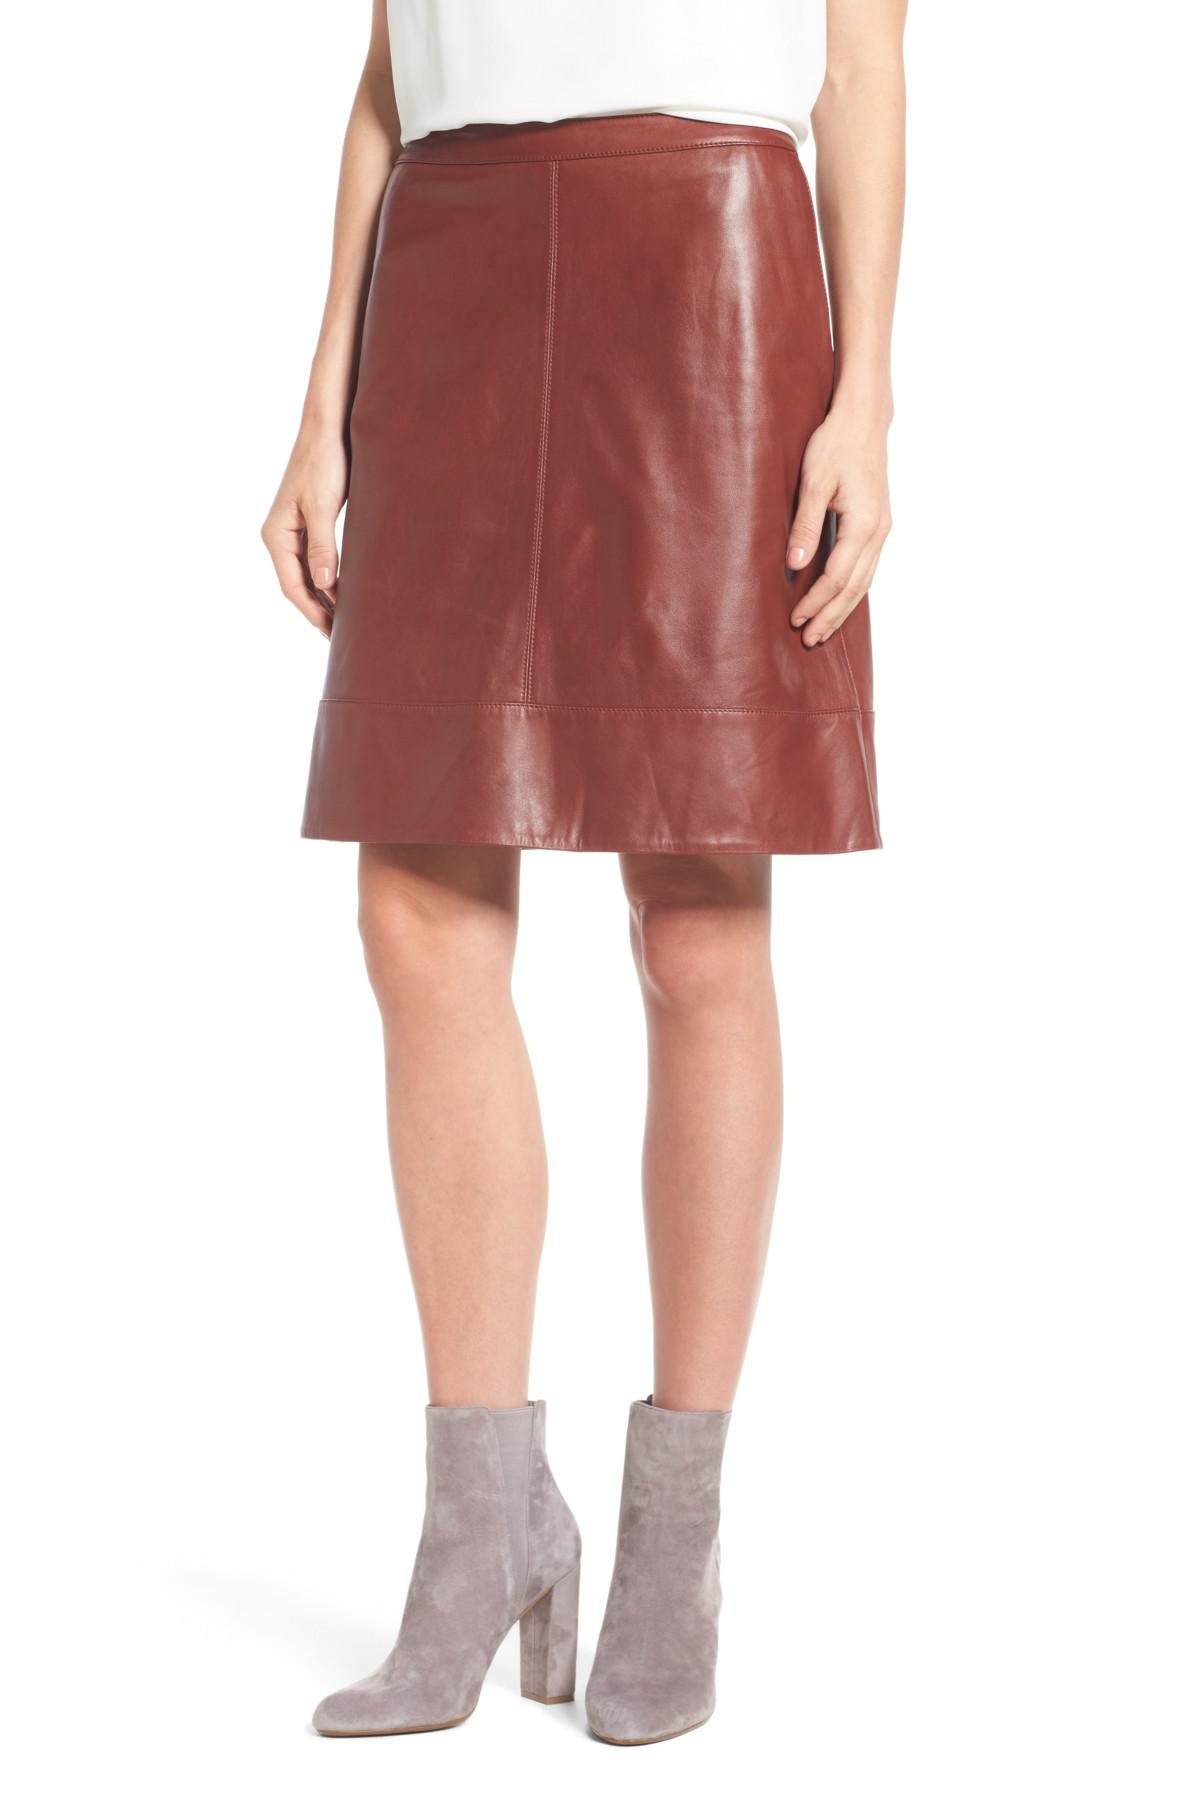 dba4f7a778 Halogen (r) A-line Leather Skirt (regular & Petite) in Red - Lyst